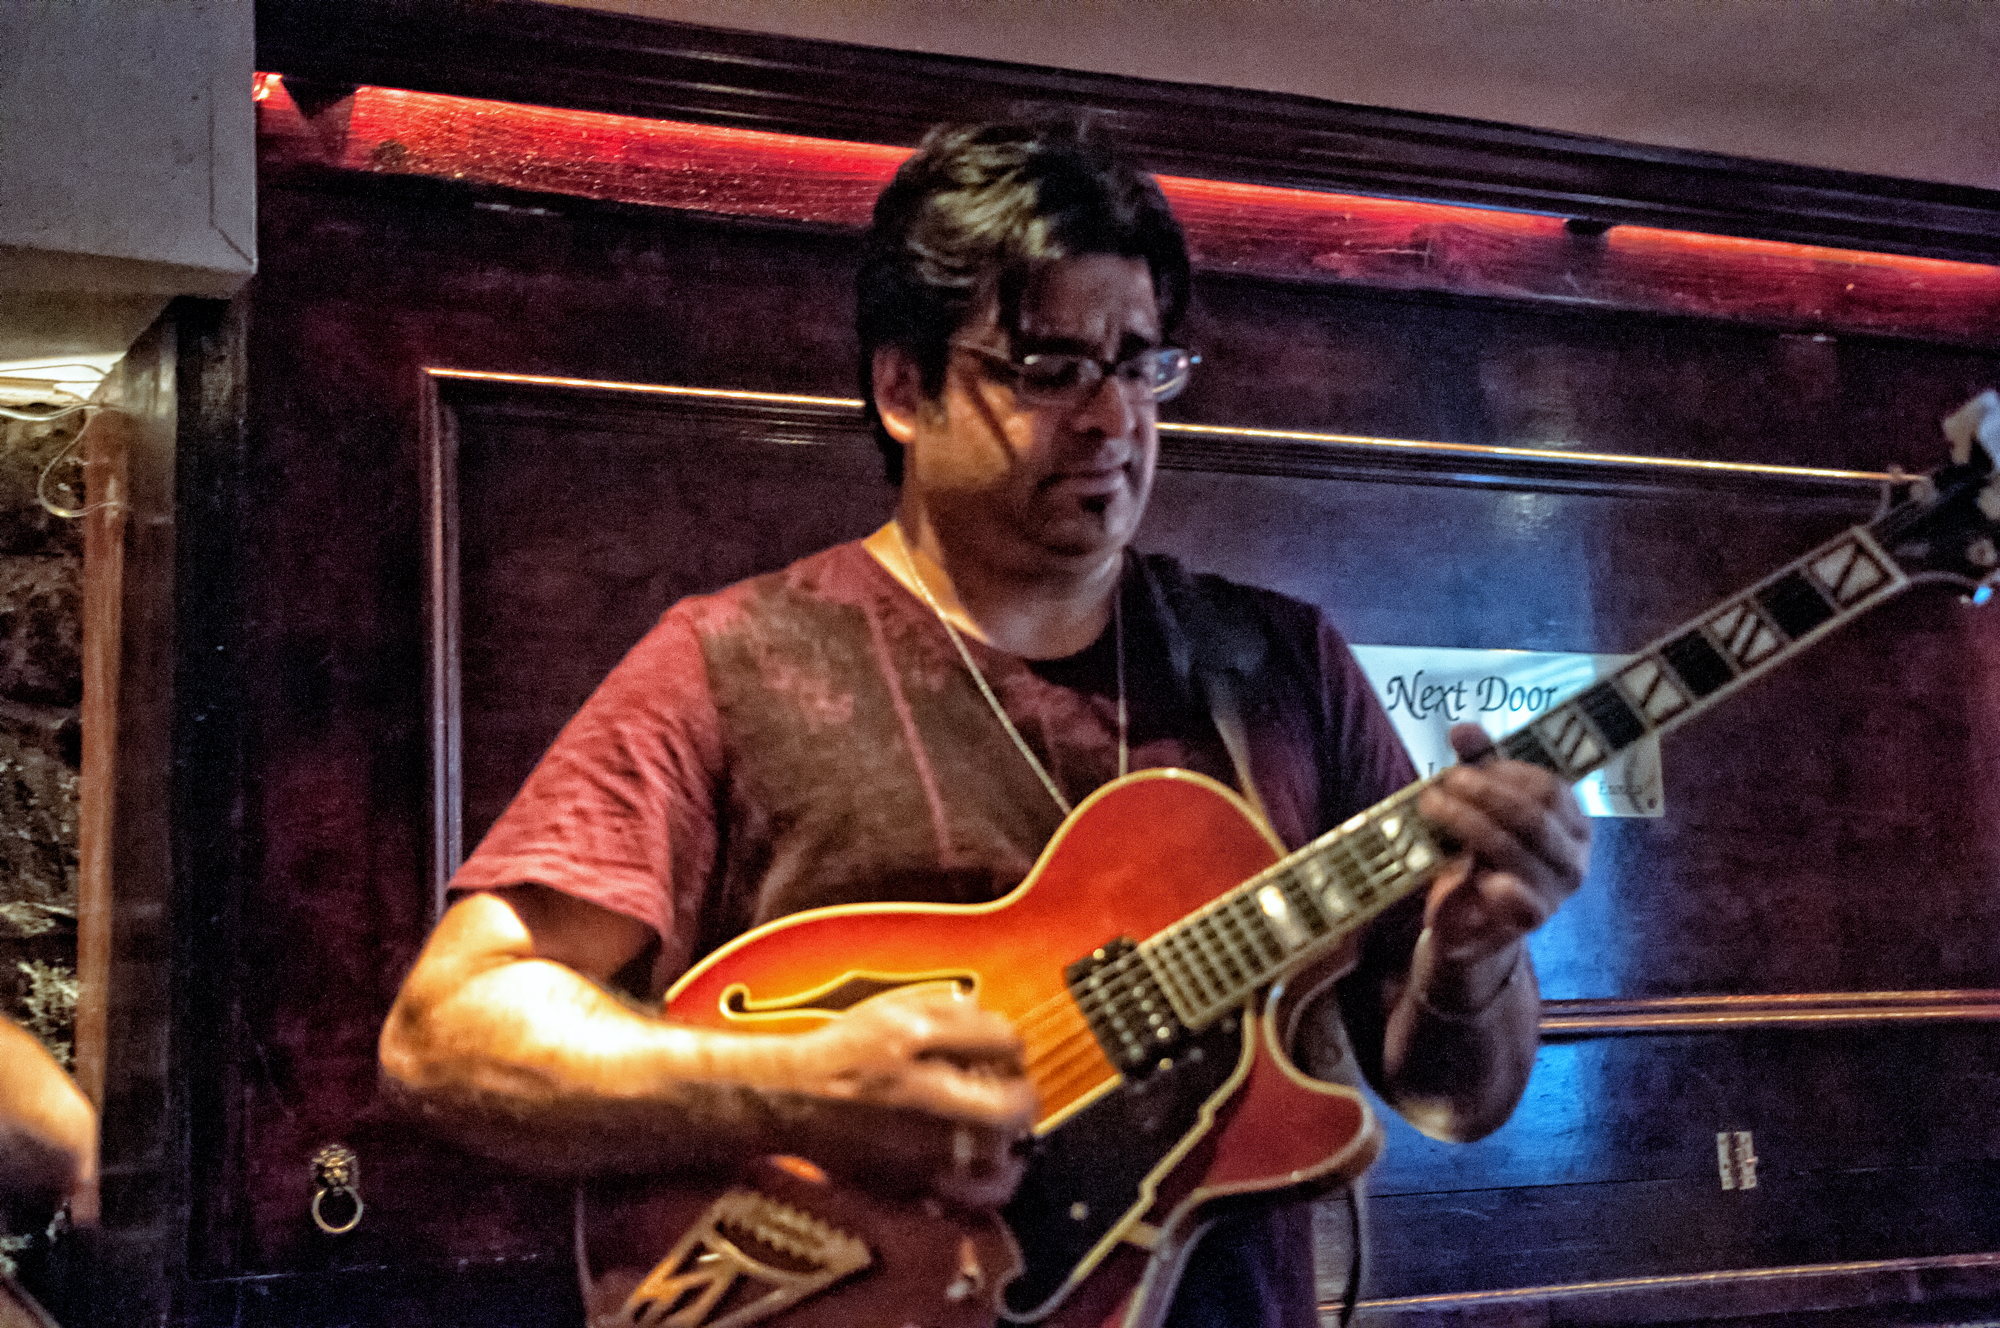 Rez Abbasi with Trio at the Bar Next Door in New York City